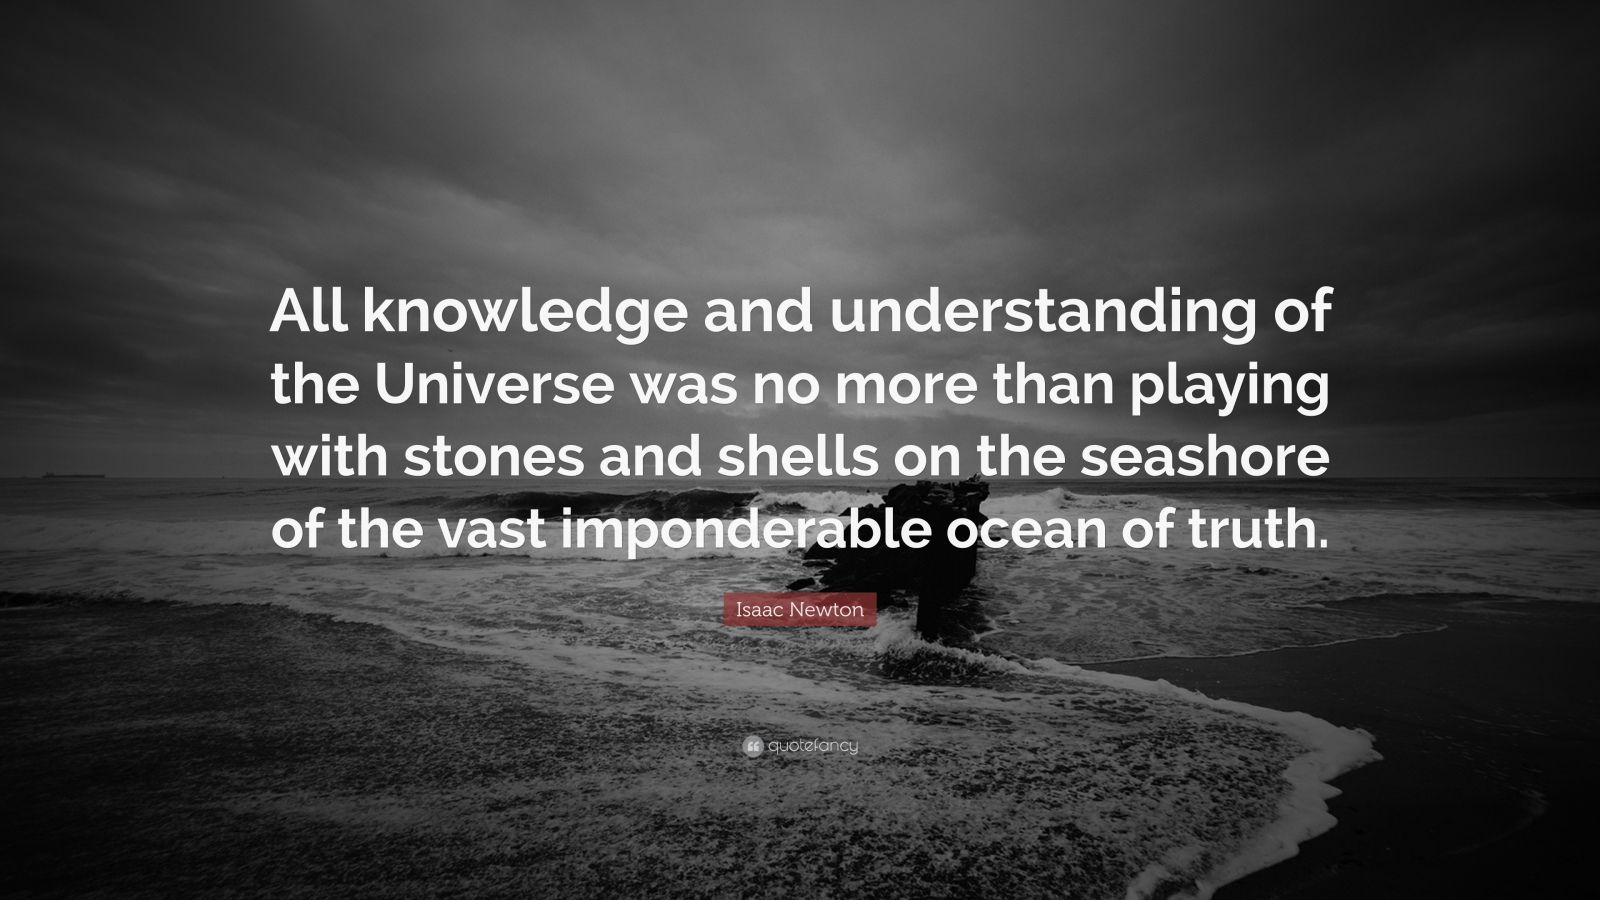 """Isaac Newton Quote: """"All knowledge and understanding of the Universe was no more than playing with stones and shells on the seashore of the vast imponderable ocean of truth."""""""